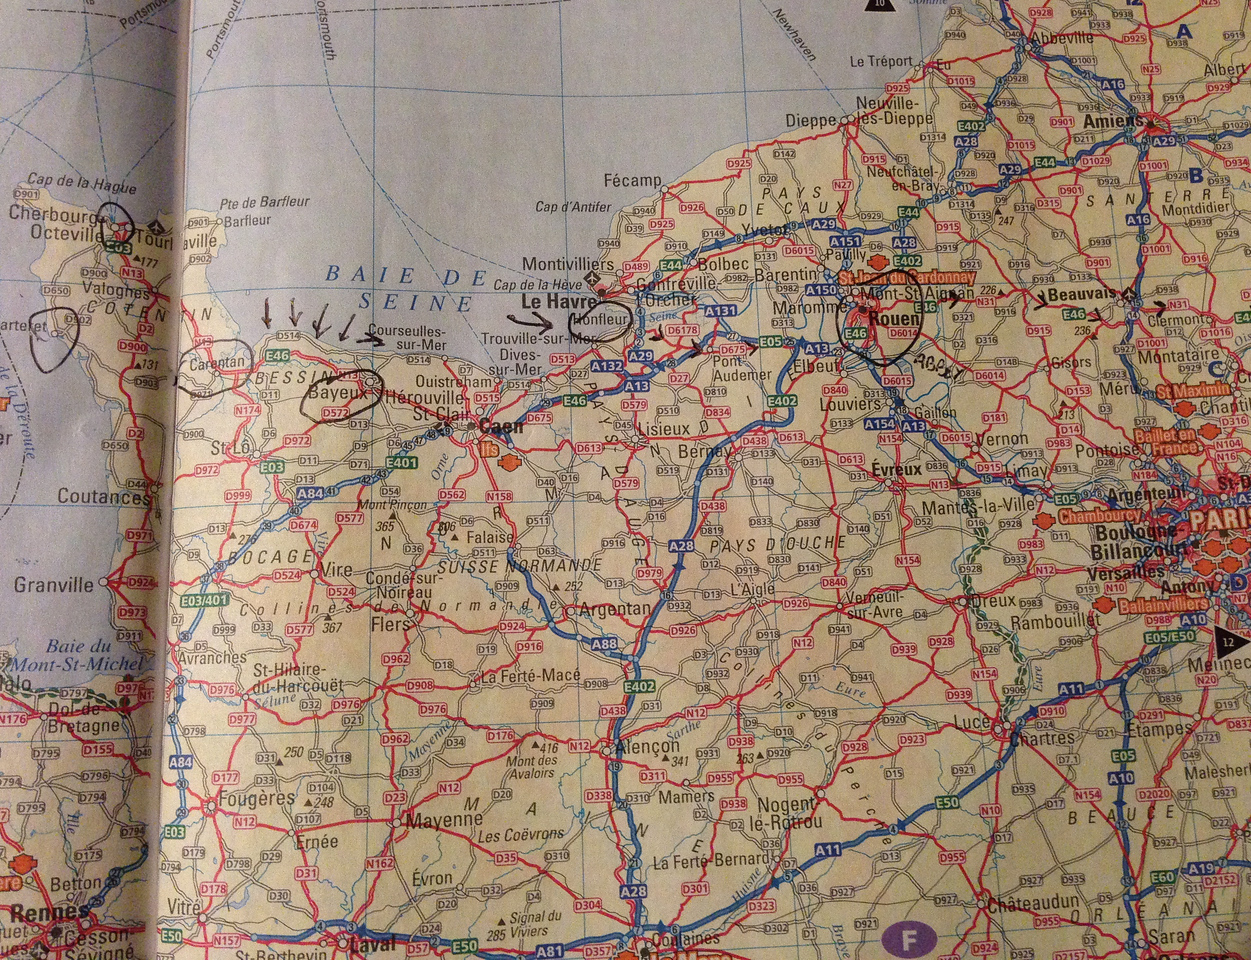 I went through Paris, and on to Cherbourg (upper left-hand corner).